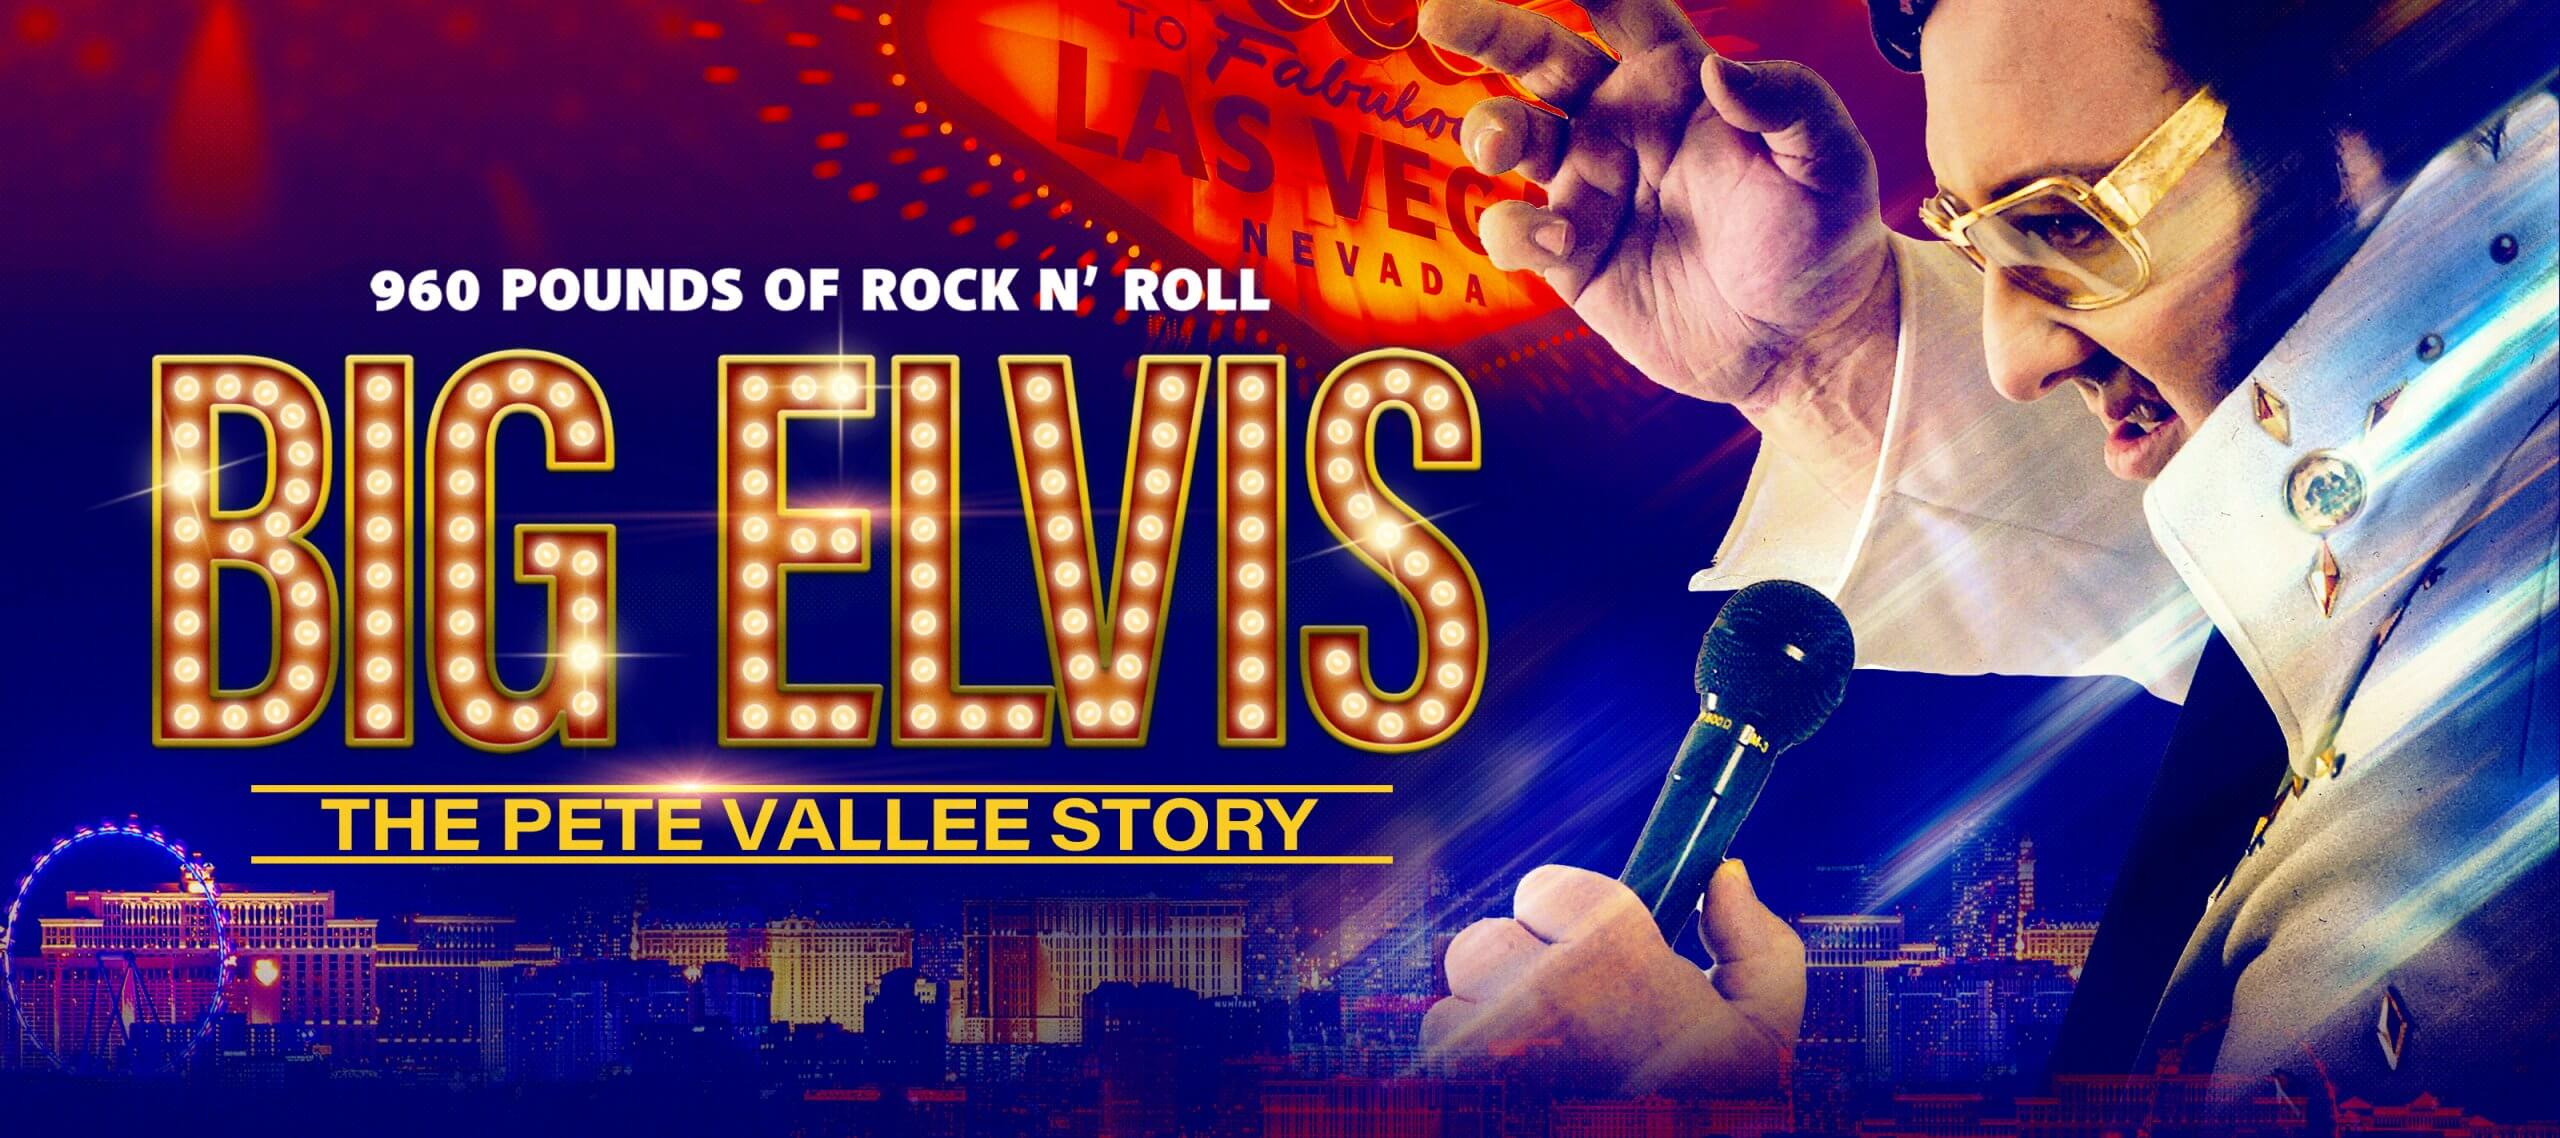 Big Elvis 3200x1422 1 scaled BIG ELVIS: THE PETE VALLEE STORY